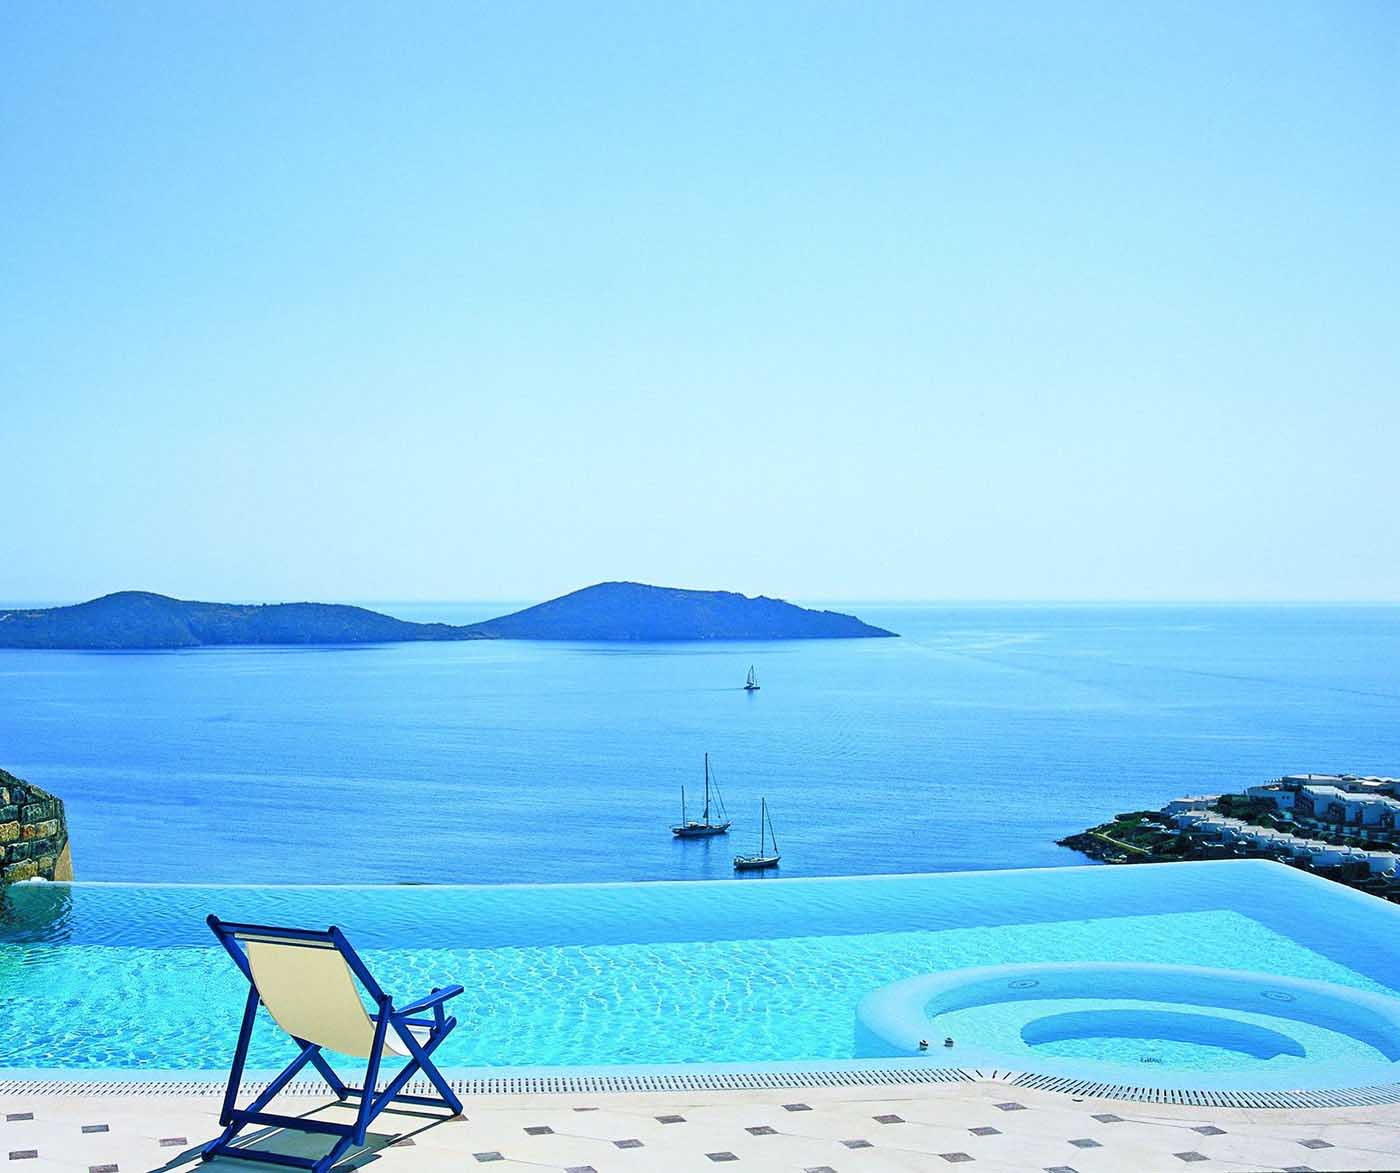 Katalagari Village hotels & resorts, 50% discount for early bookings, Katalagari Village, Heraklion, Crete, Greece